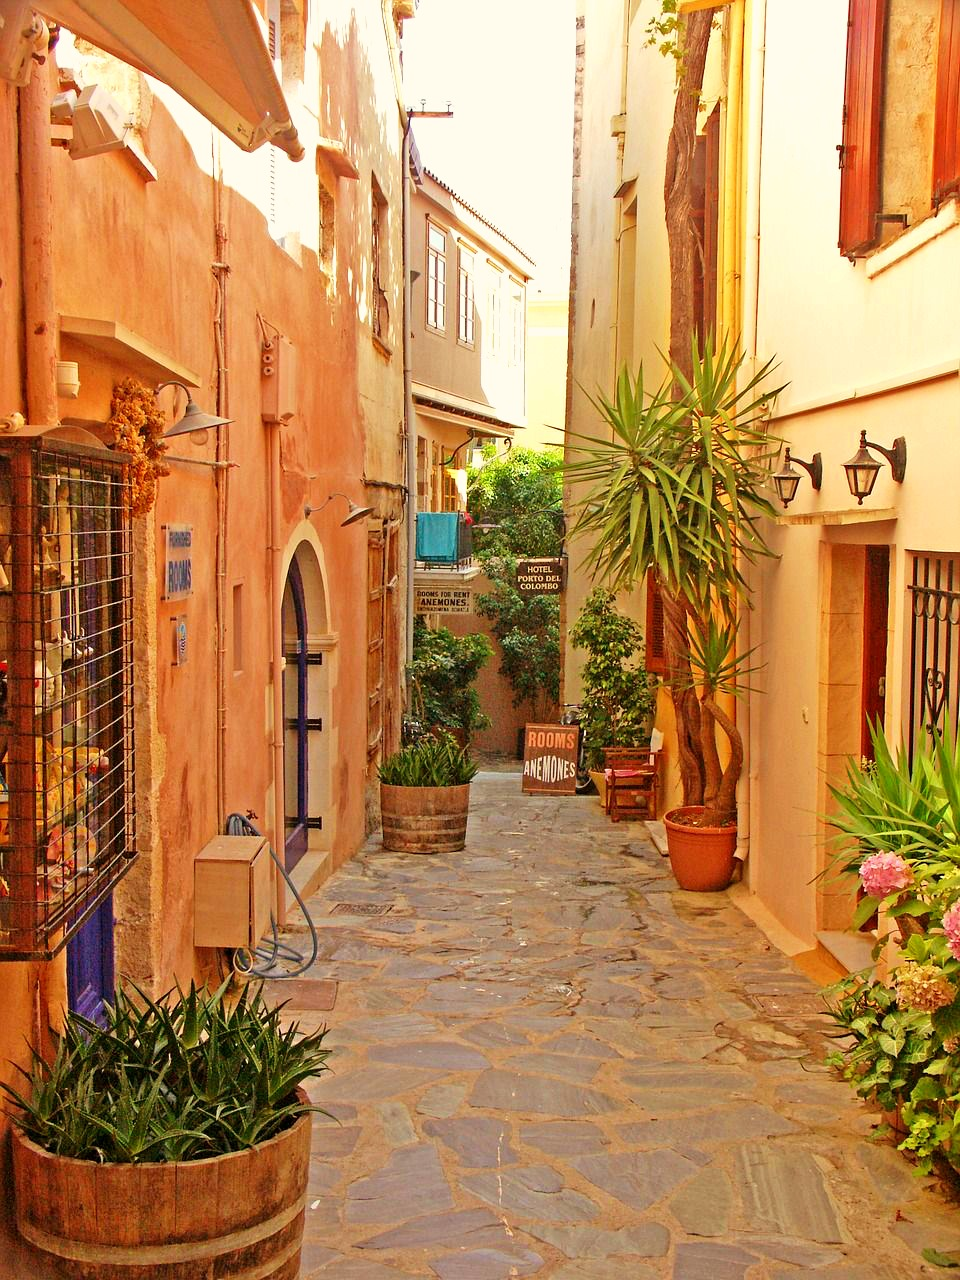 Old street in Crete